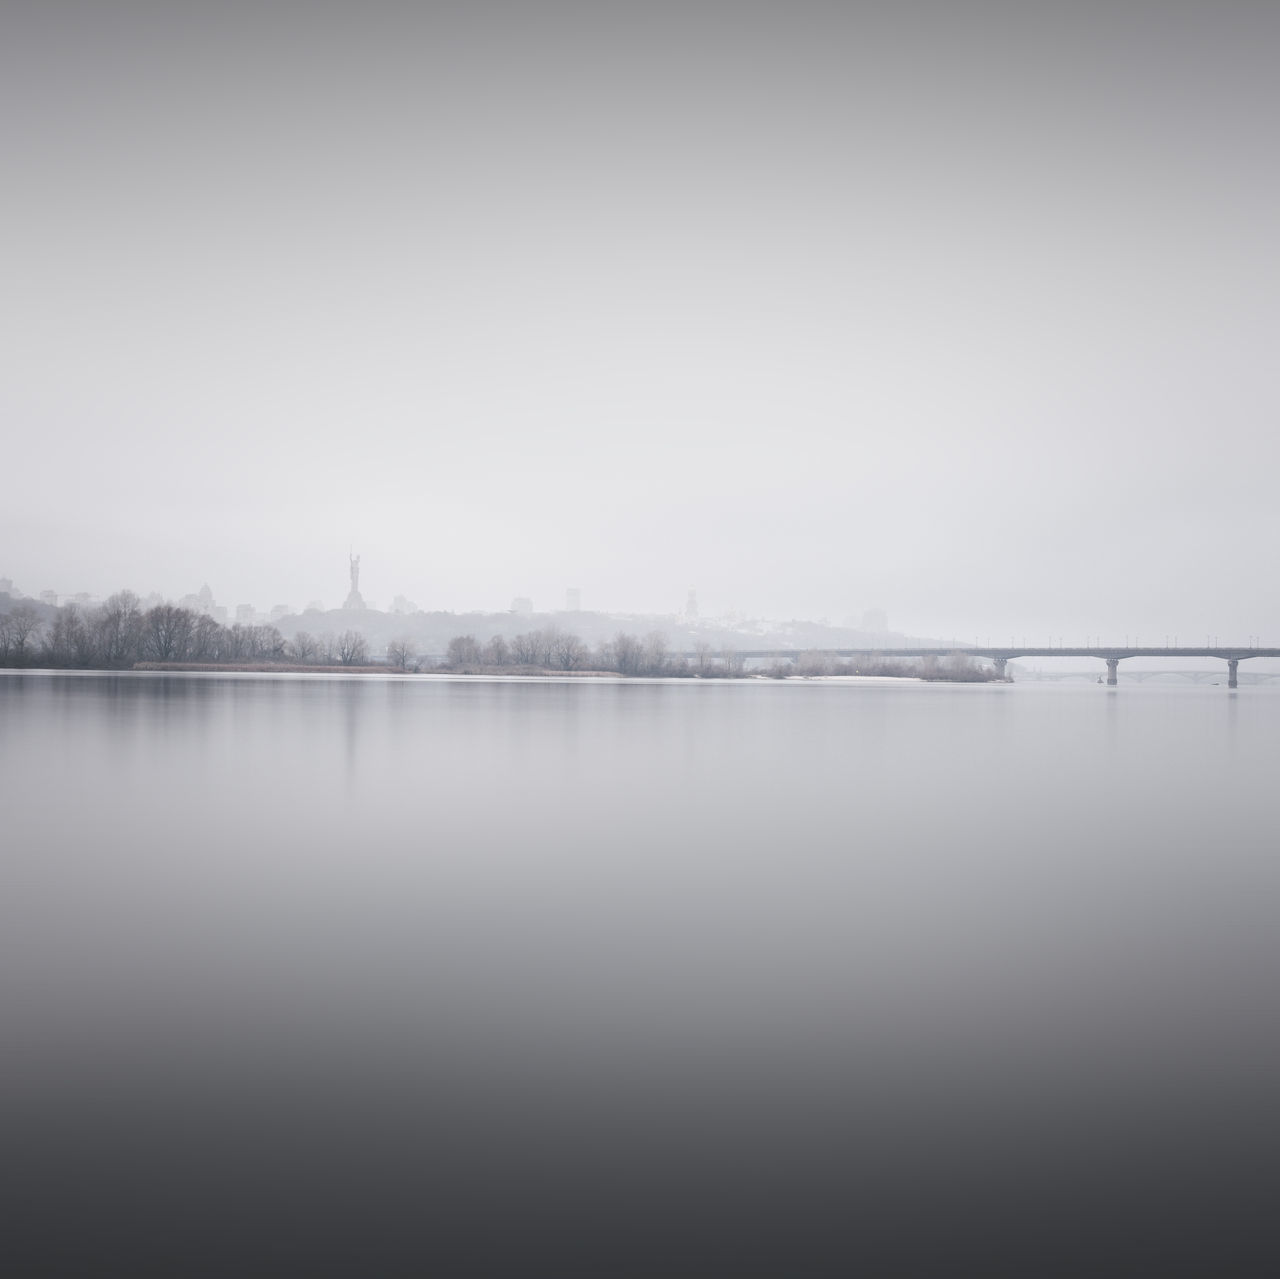 scenic view of river against sky during winter Beauty In Nature Cold Temperature Copy Space Day Fine Art Fog Kyiv Lake Landscape Long Exposure Muted Colors Nature No People Outdoors Philipp Dase River Scenics Sky Tranquil Scene Tranquility Ukraine Water Winter